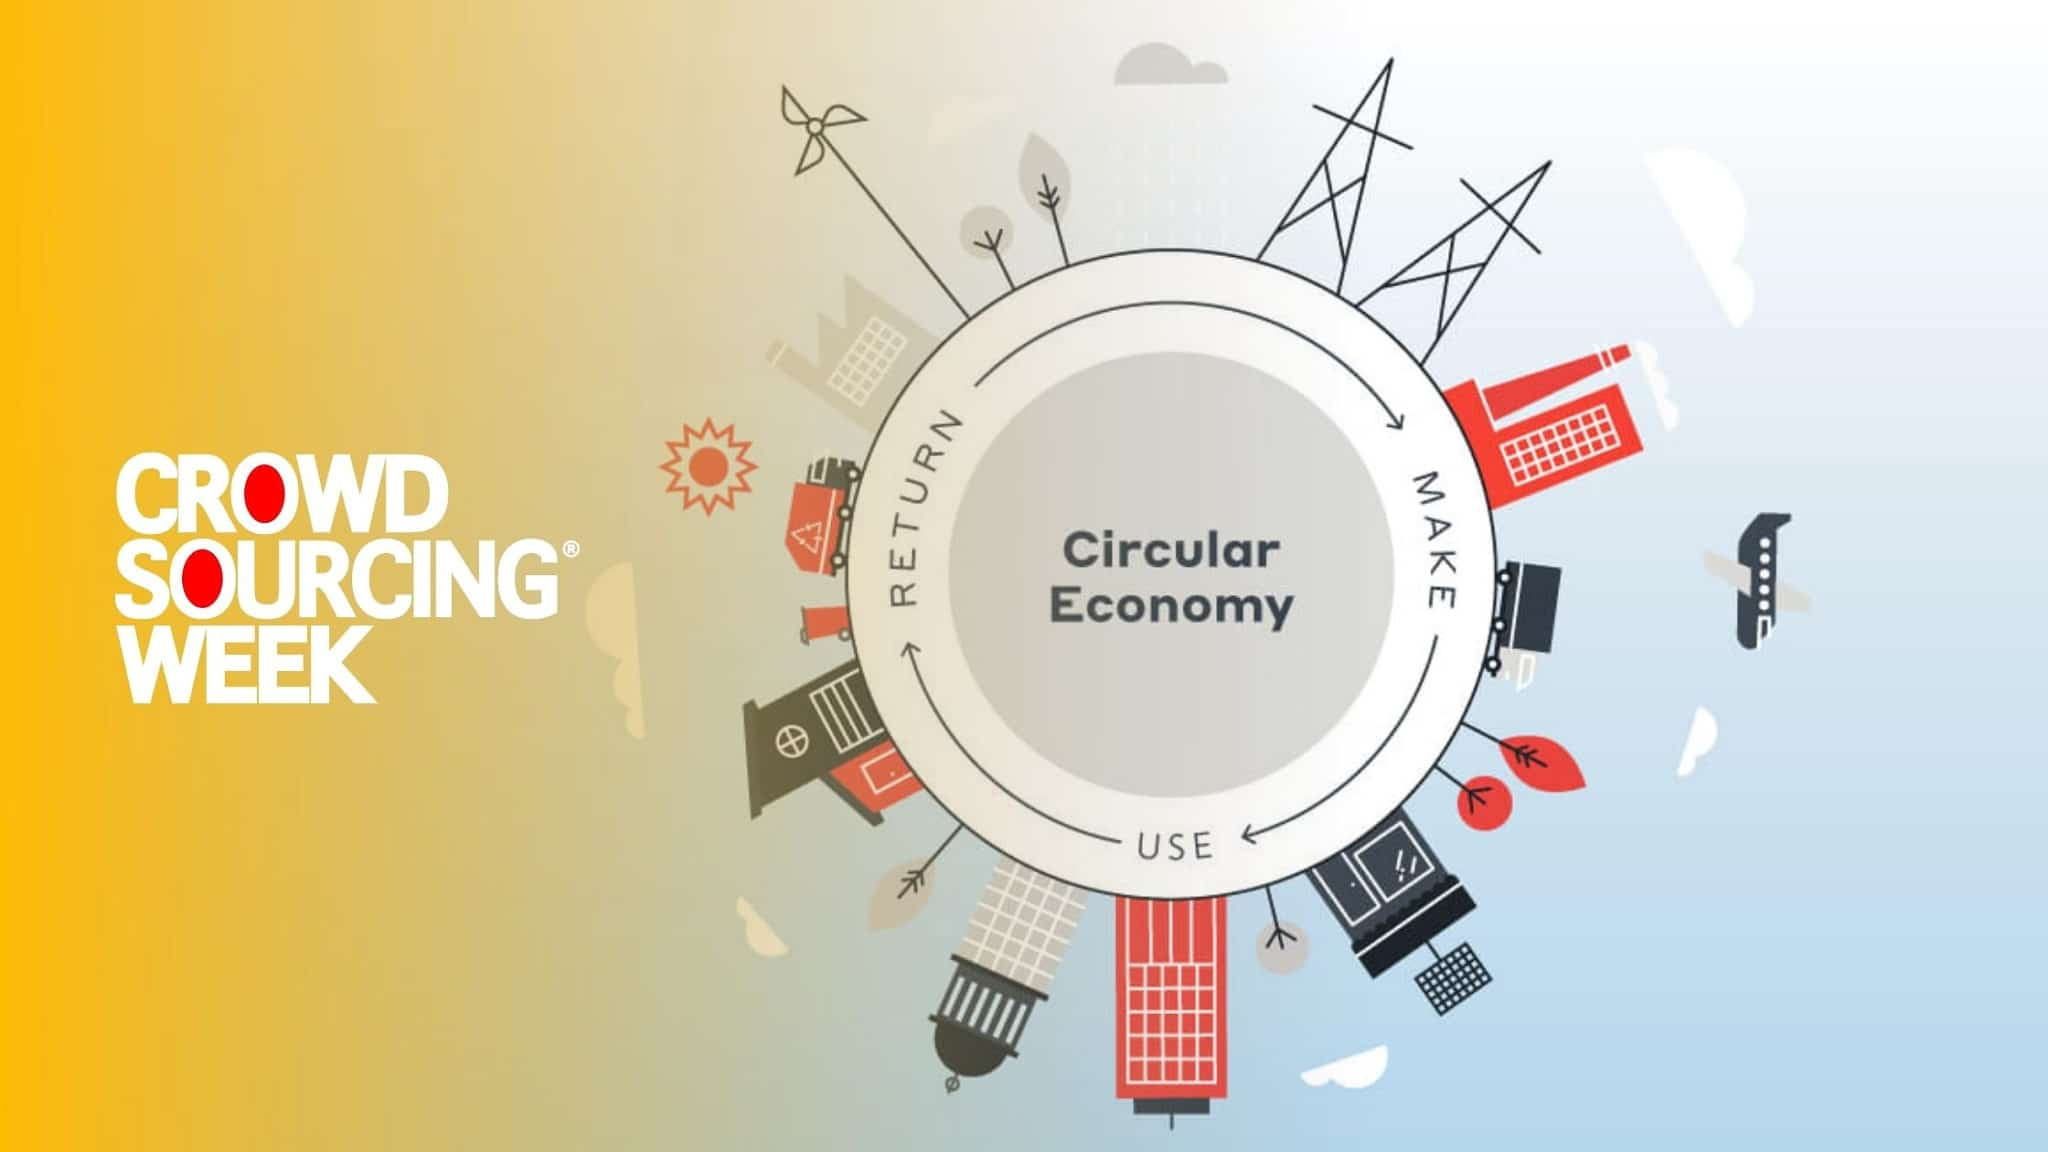 crowdsourcing in the circular economy